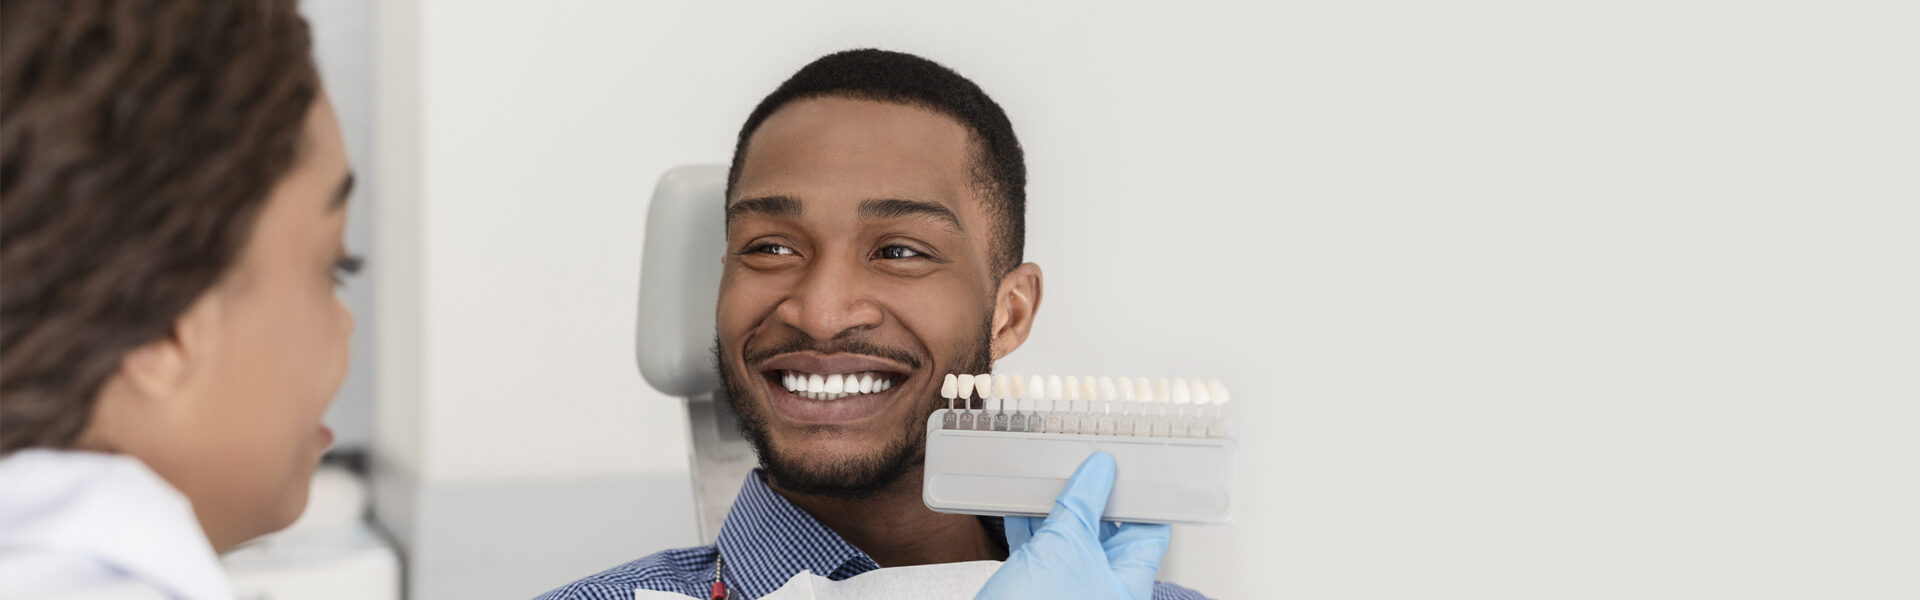 Achieve the Hollywood Smile You Desperately Desire Using Veneers and Smile Away